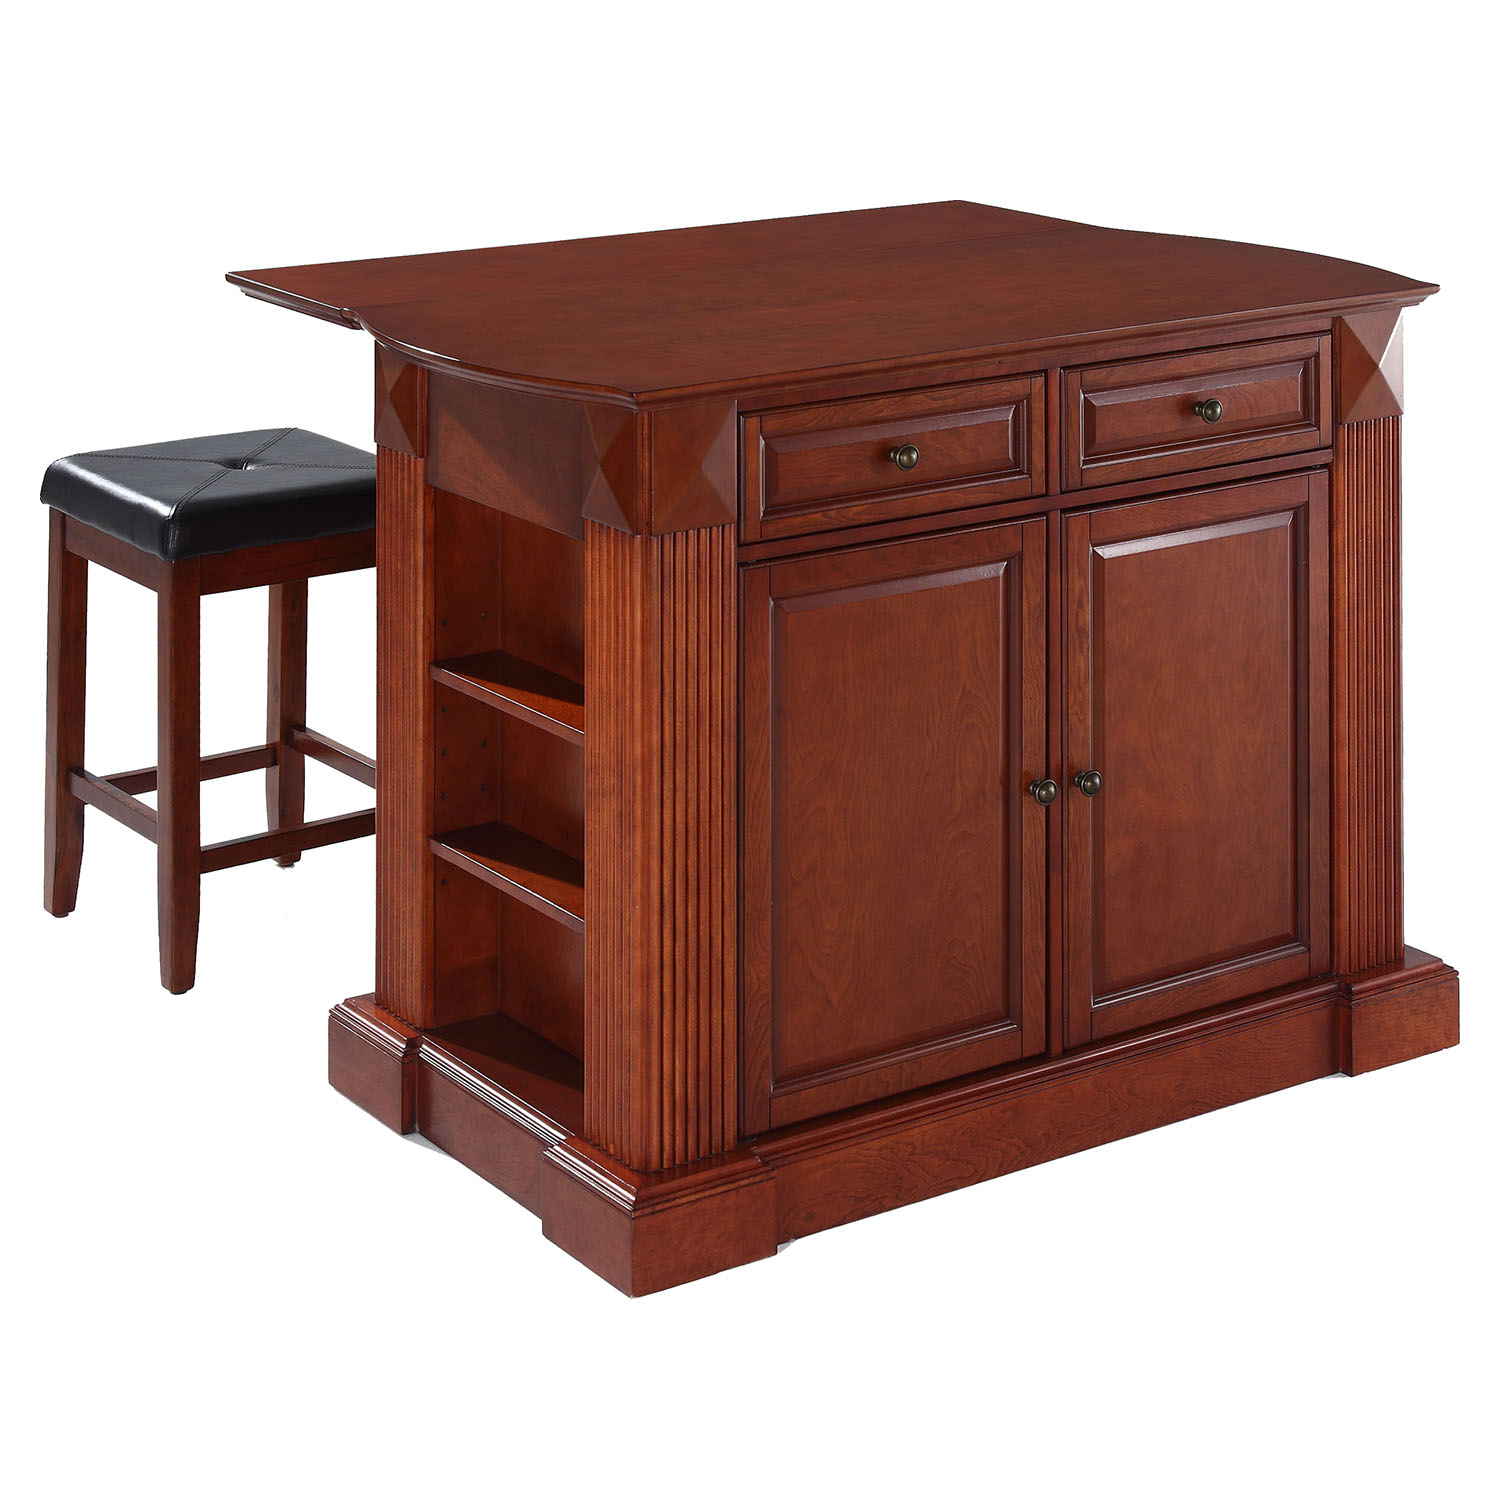 "Drop Leaf Kitchen Island in Cherry with 24"" Cherry Square Seat Stools - CROS-KF300075CH"